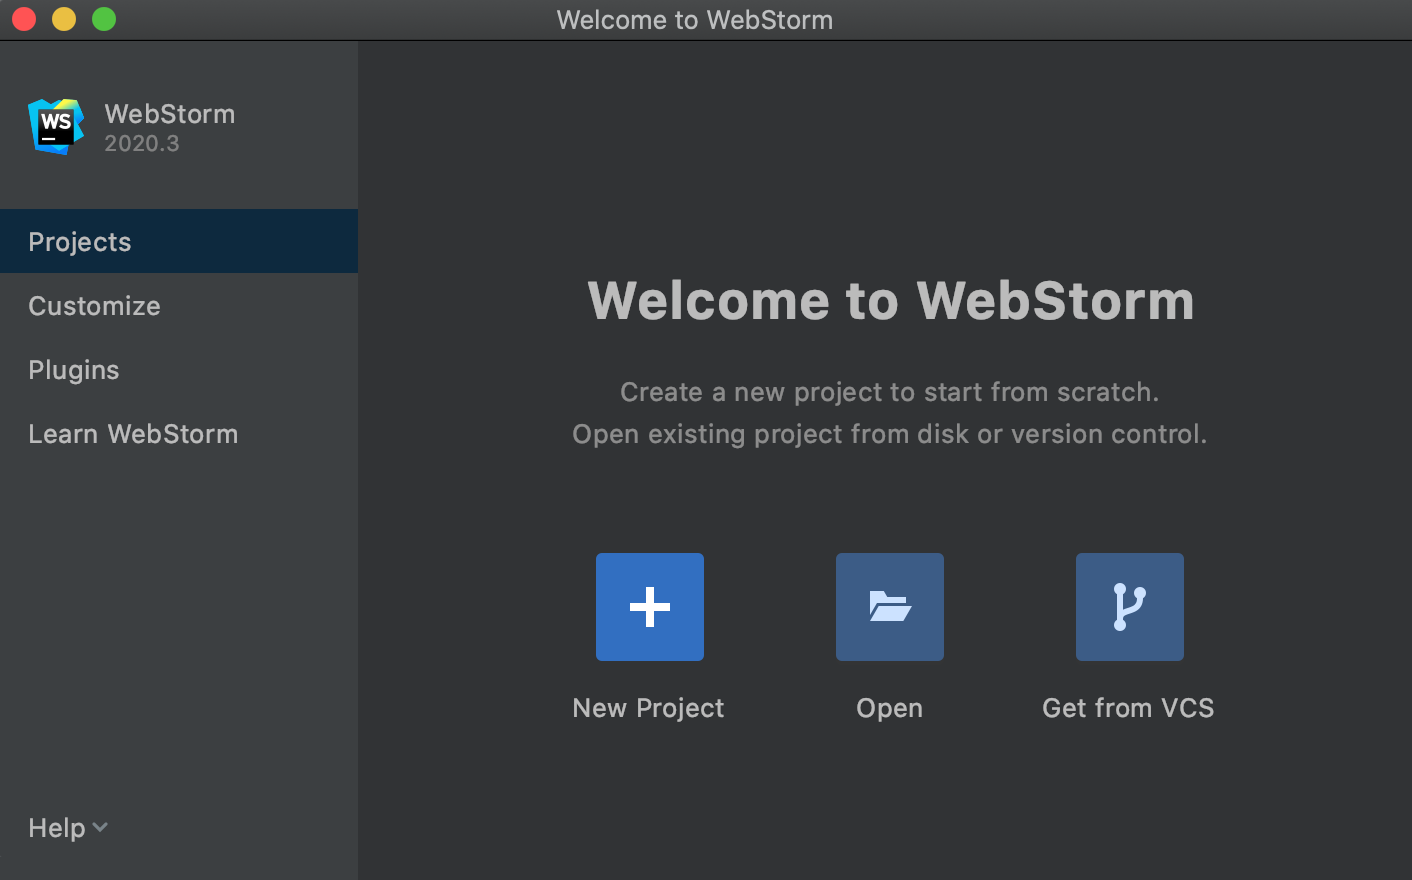 Open, check out, and create projects from the Welcome screen